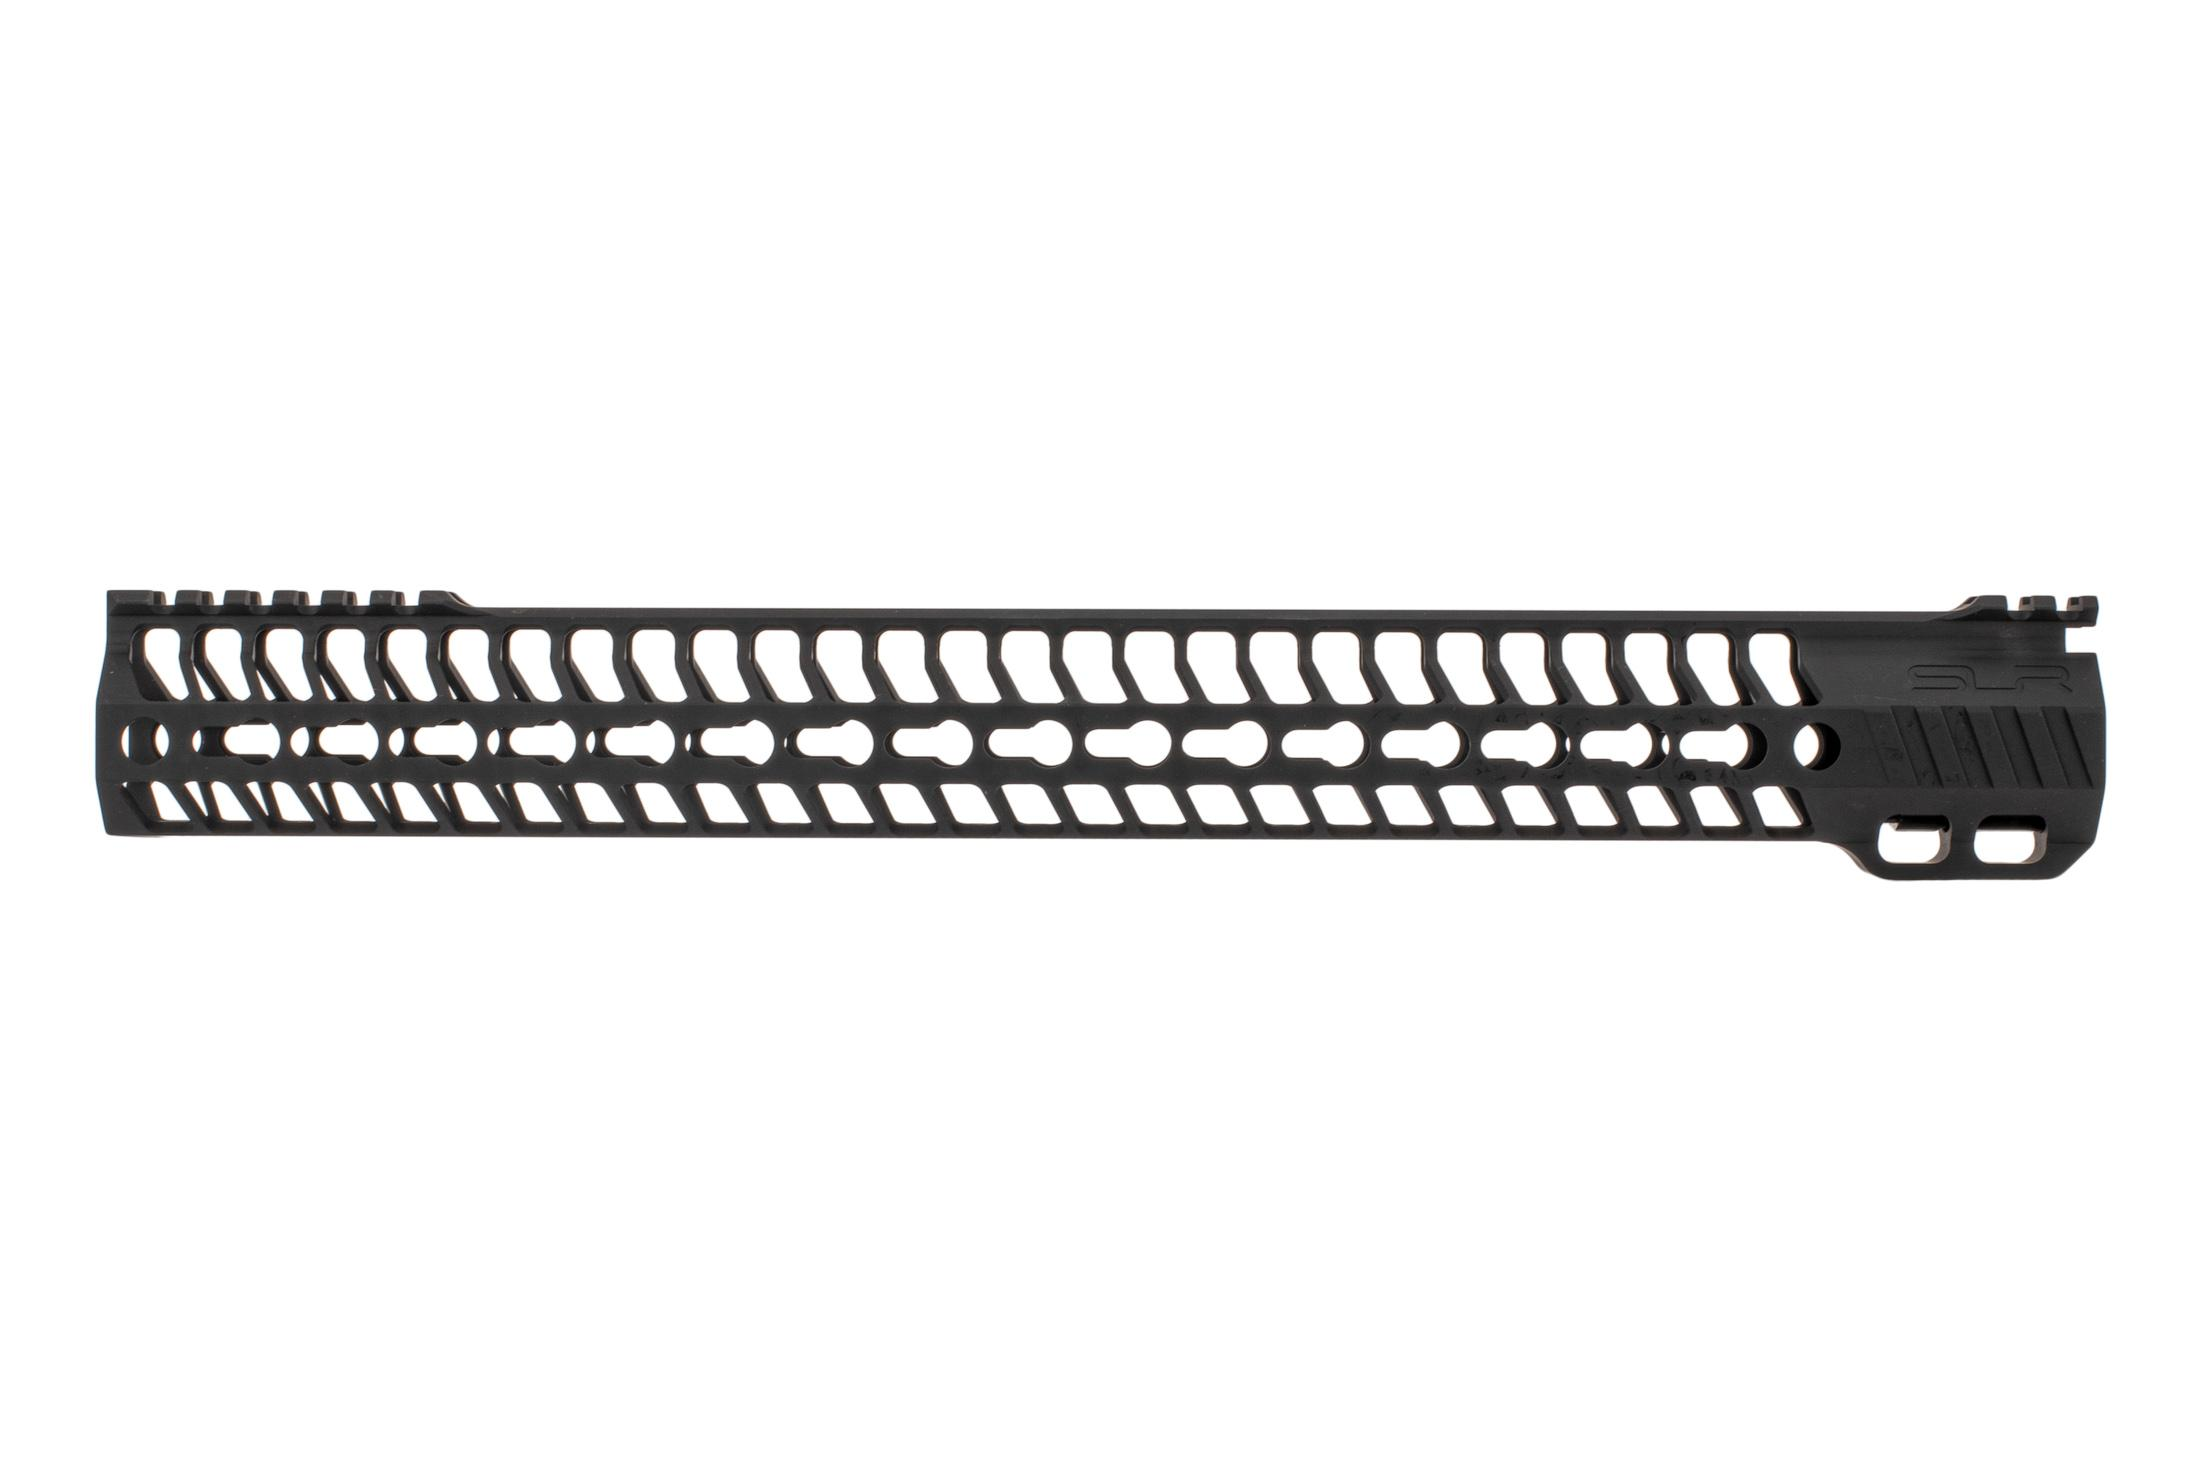 SLR Rifleworks M-LOK HELIX rail is 16.0 for AR15 with black anodized finish and interrupted top rail